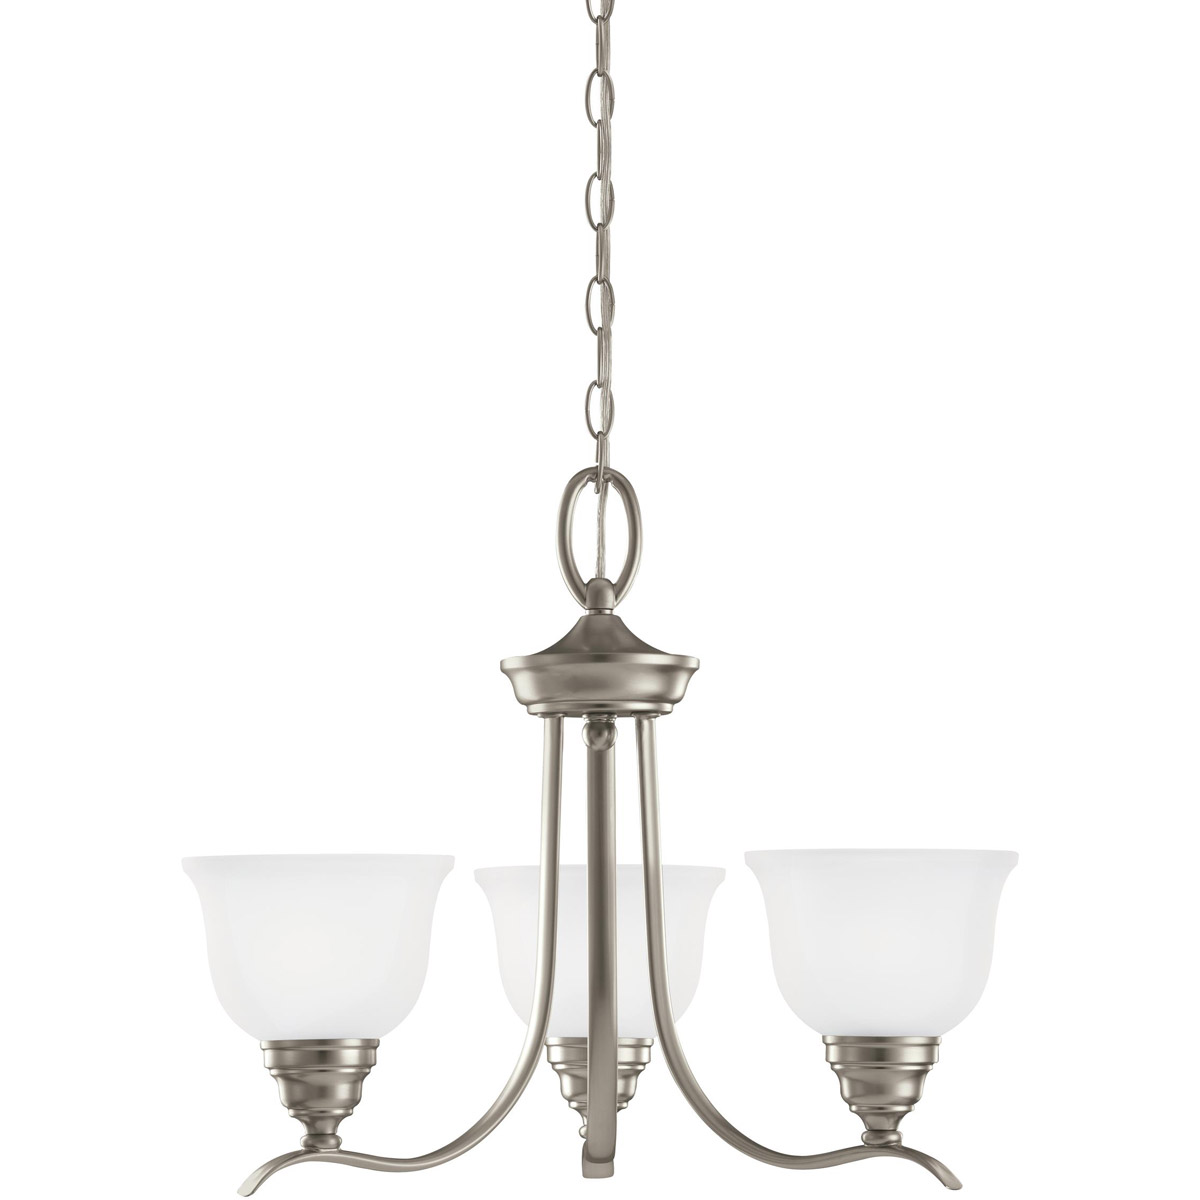 Sea Gull Lighting Wheaton 3 Light Chandelier in Brushed Nickel 31625-962